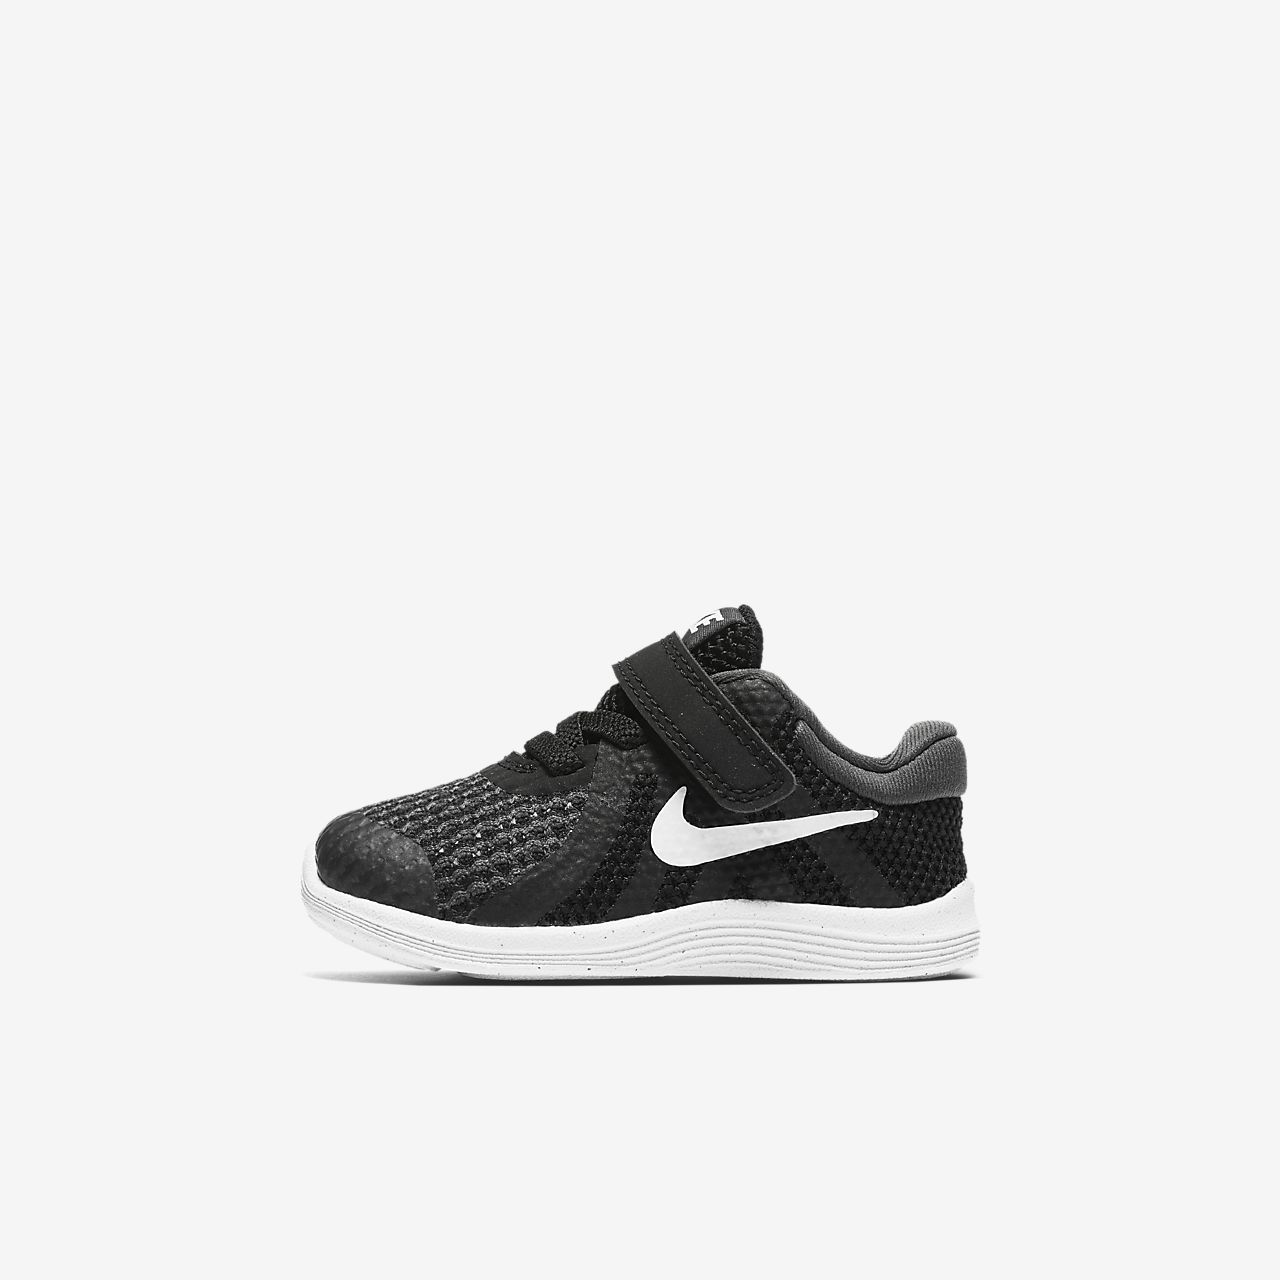 fdeb743a672c1 Nike Revolution 4 Baby   Toddler Shoe. Nike.com GB